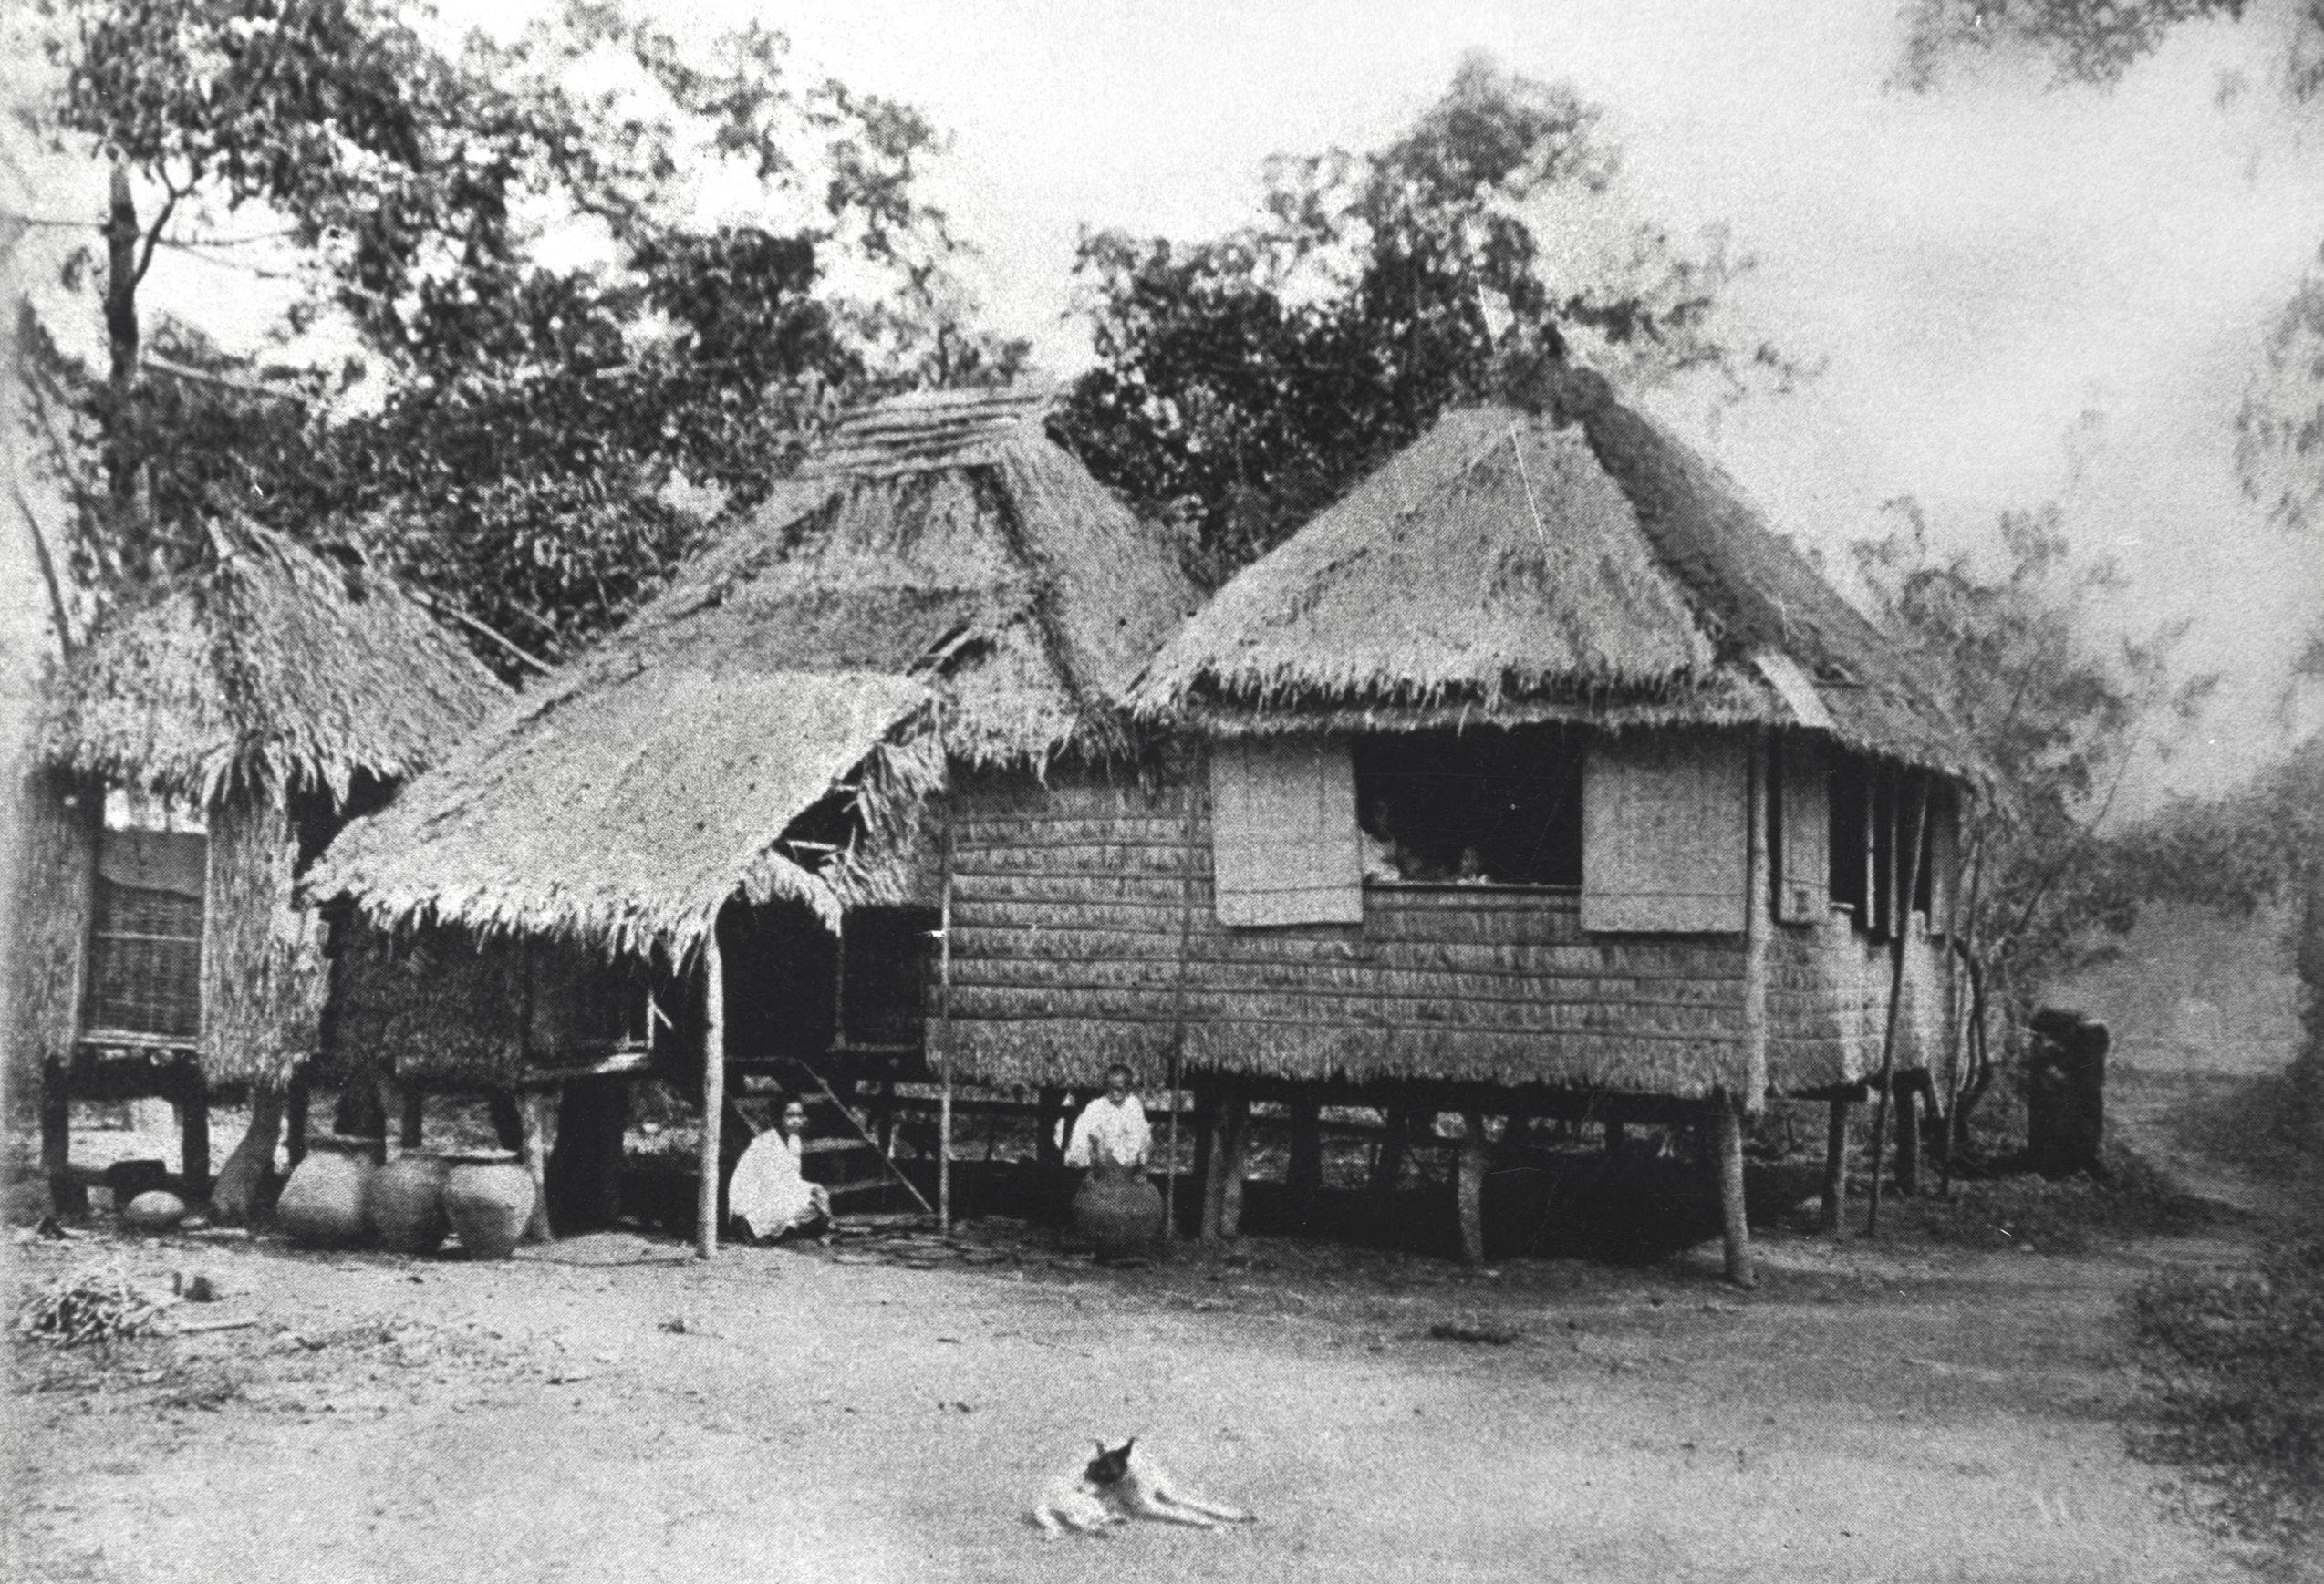 Homes in the village of Nagaba, on the island of Guimaras. Taken in the Philippines, 1906 or before. Photo courtesy of John Tewell.